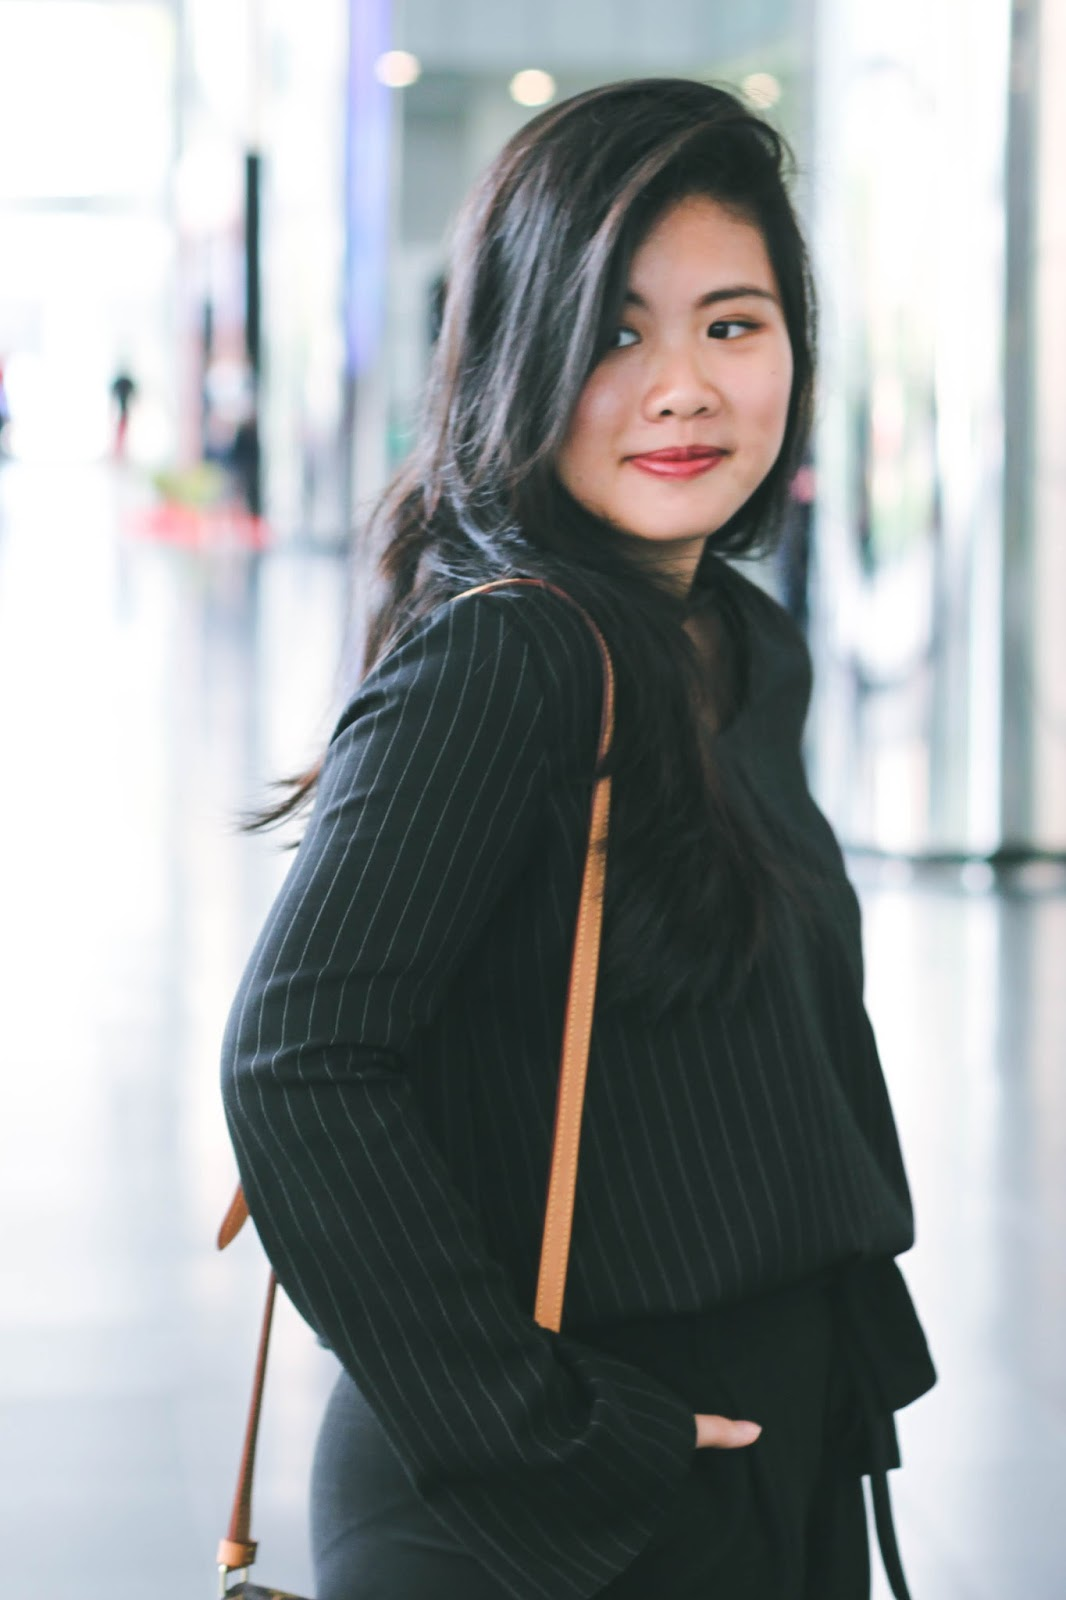 singapore blogger, ootdsg, photographer, xincerely, lookbooksg, lookbook, outfit, wiwt, streetstyle